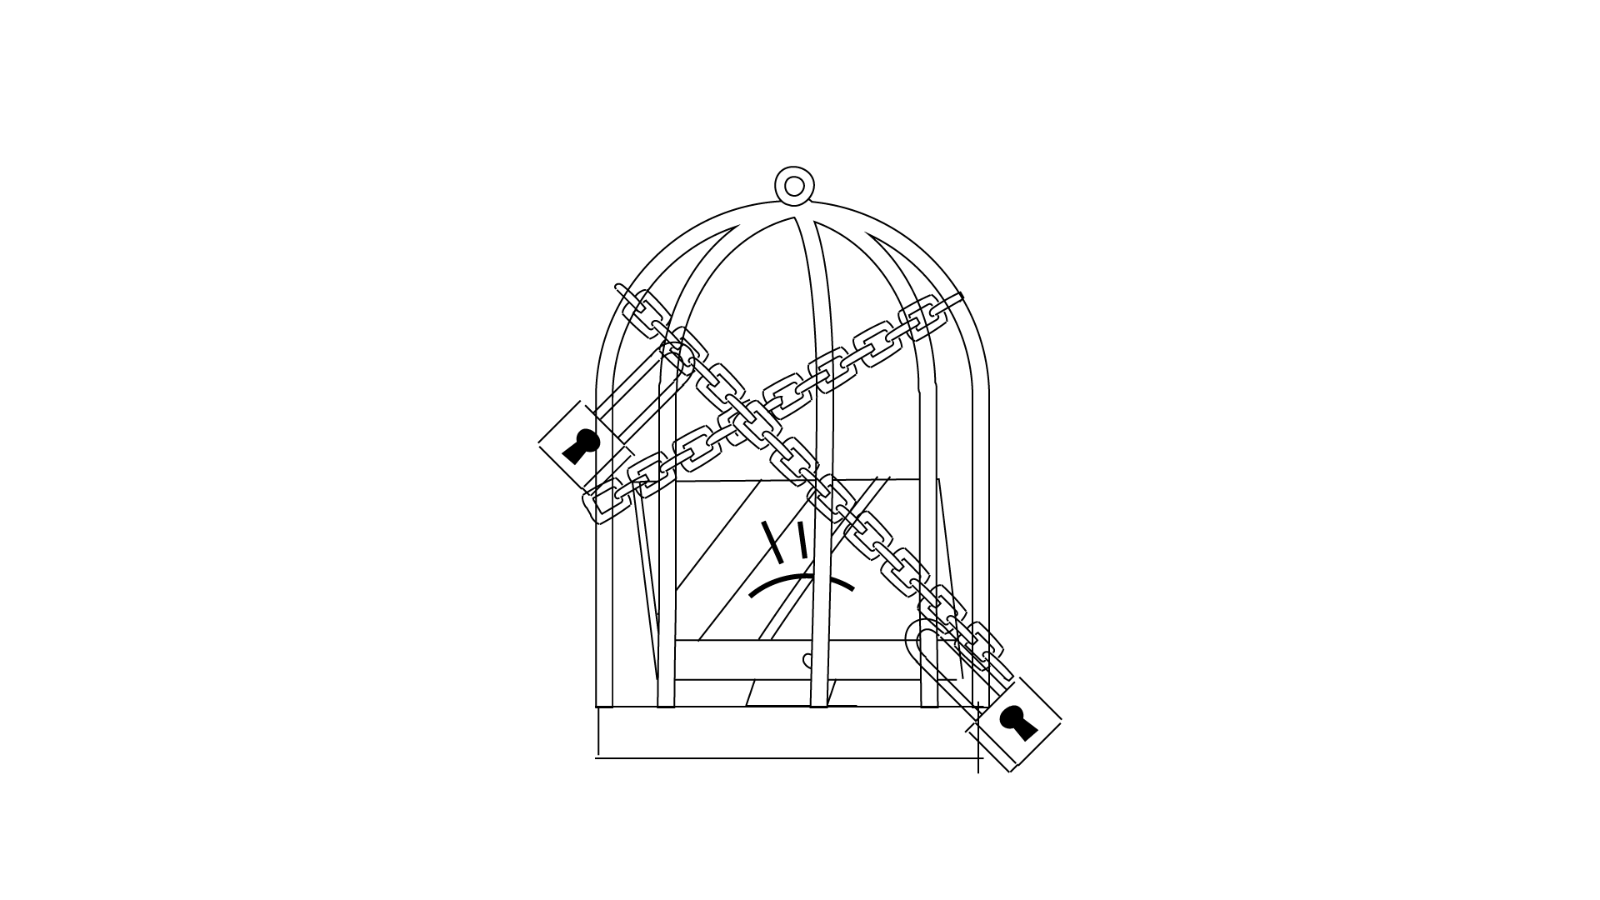 Sketch for a video about Open Source, by Iluli. It shows a computer in a cage